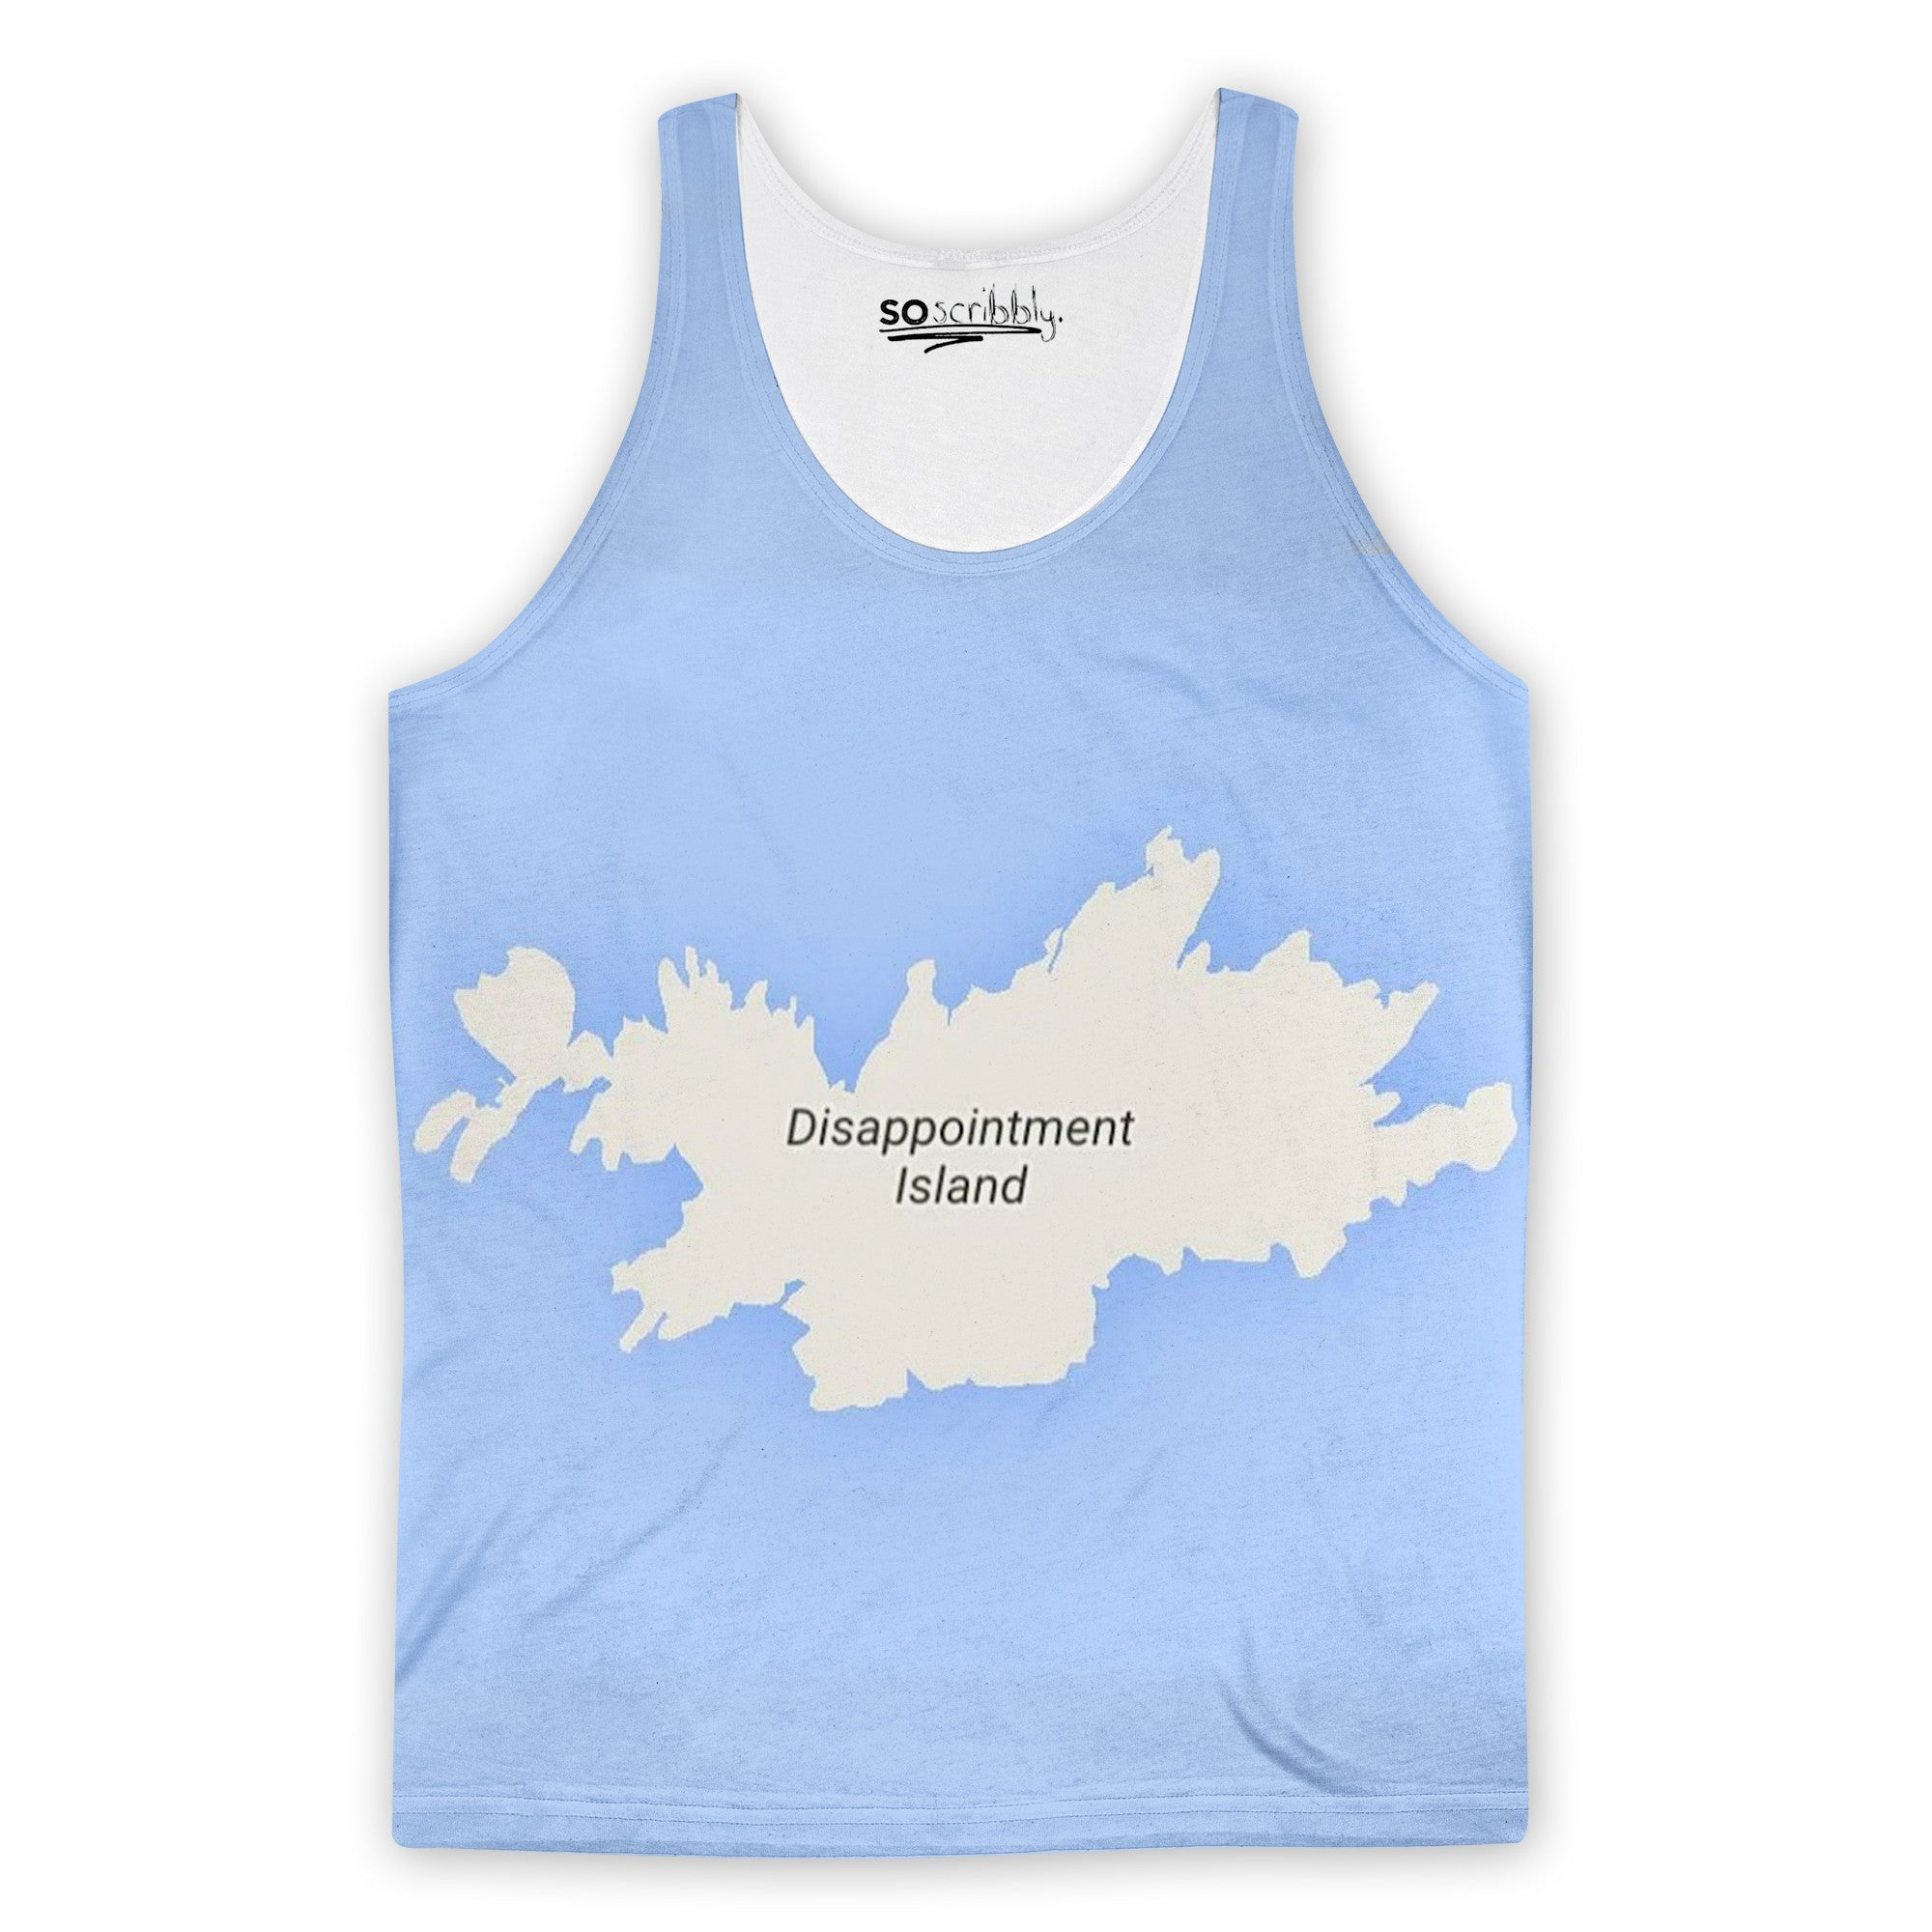 Disappointment Island Tank Top